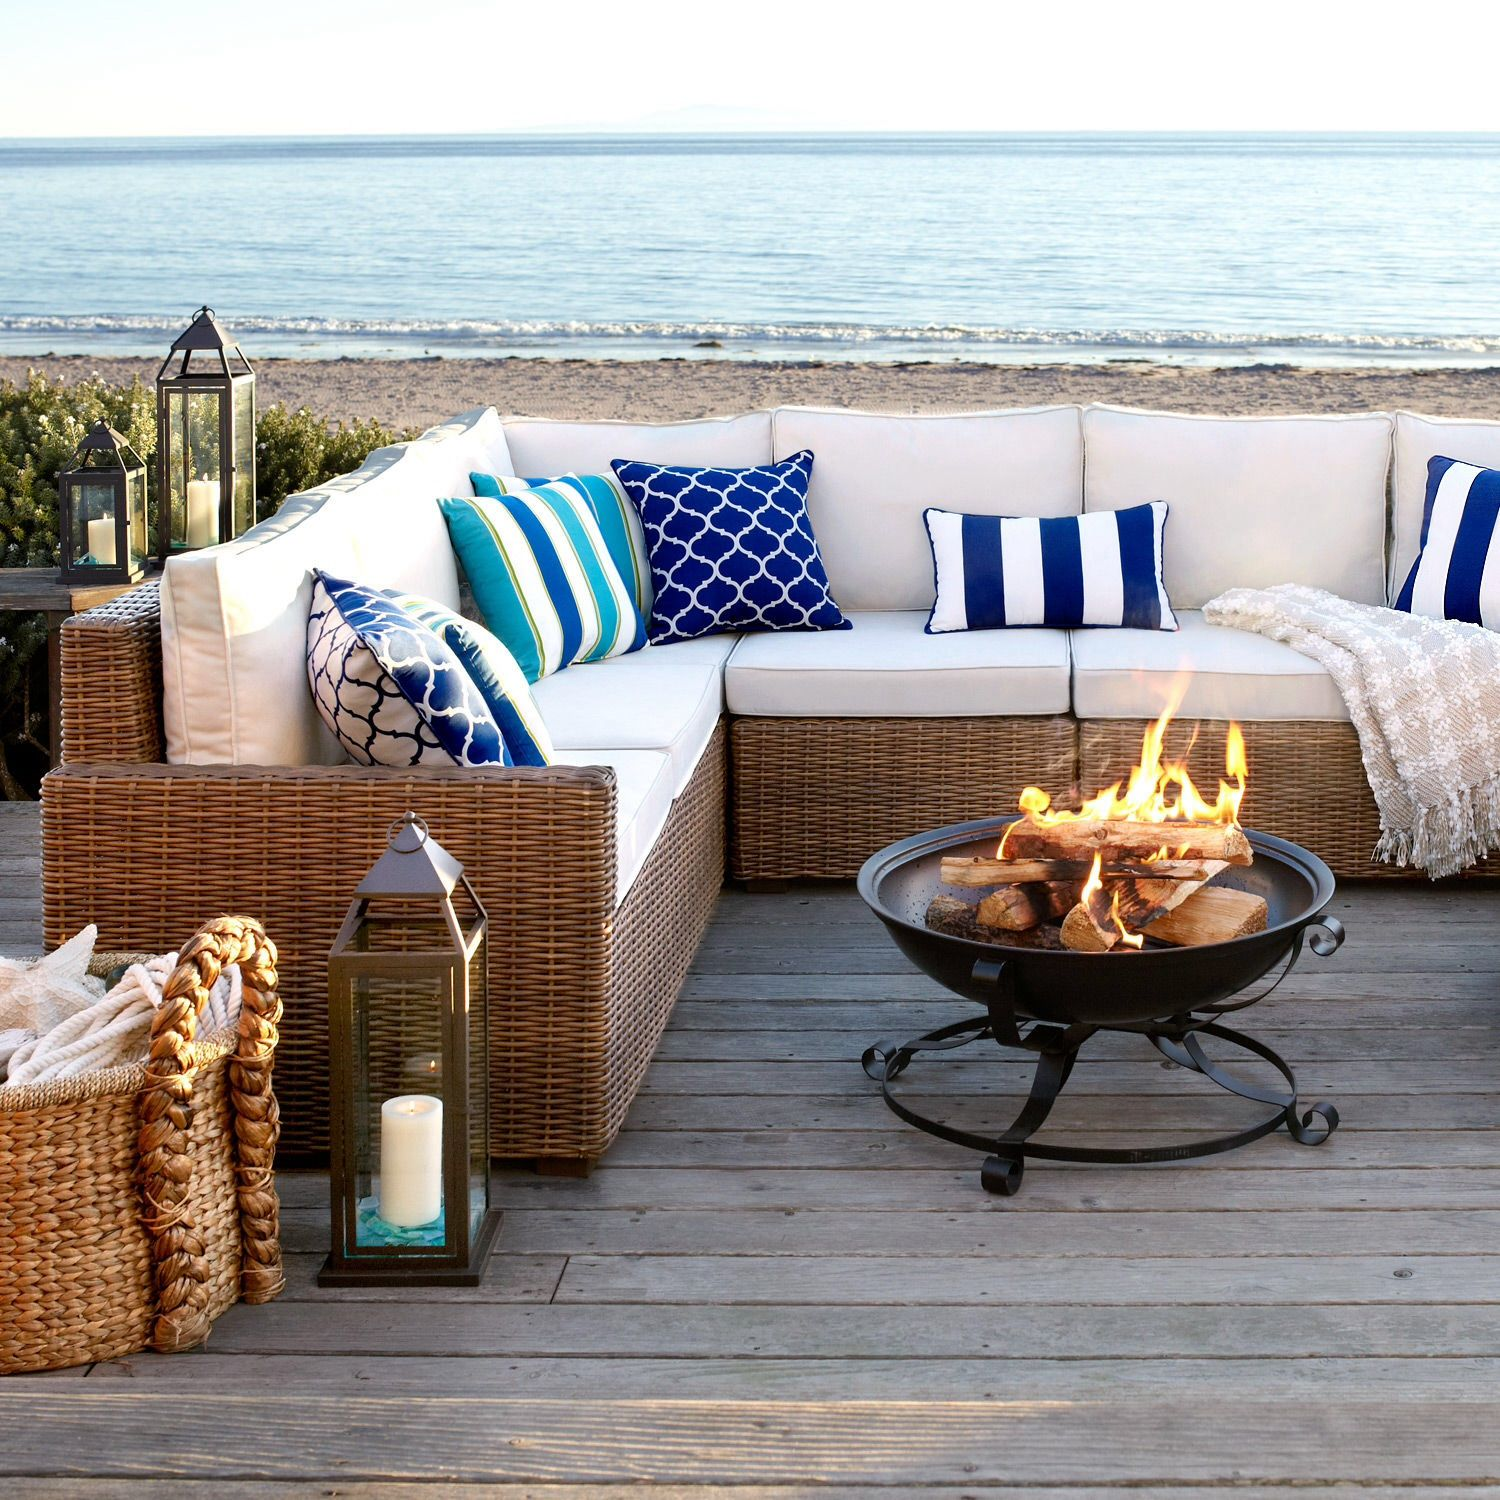 Pleasant I Love This Patio Set Pier One Imports Ideas For The Home Interior And Landscaping Ferensignezvosmurscom